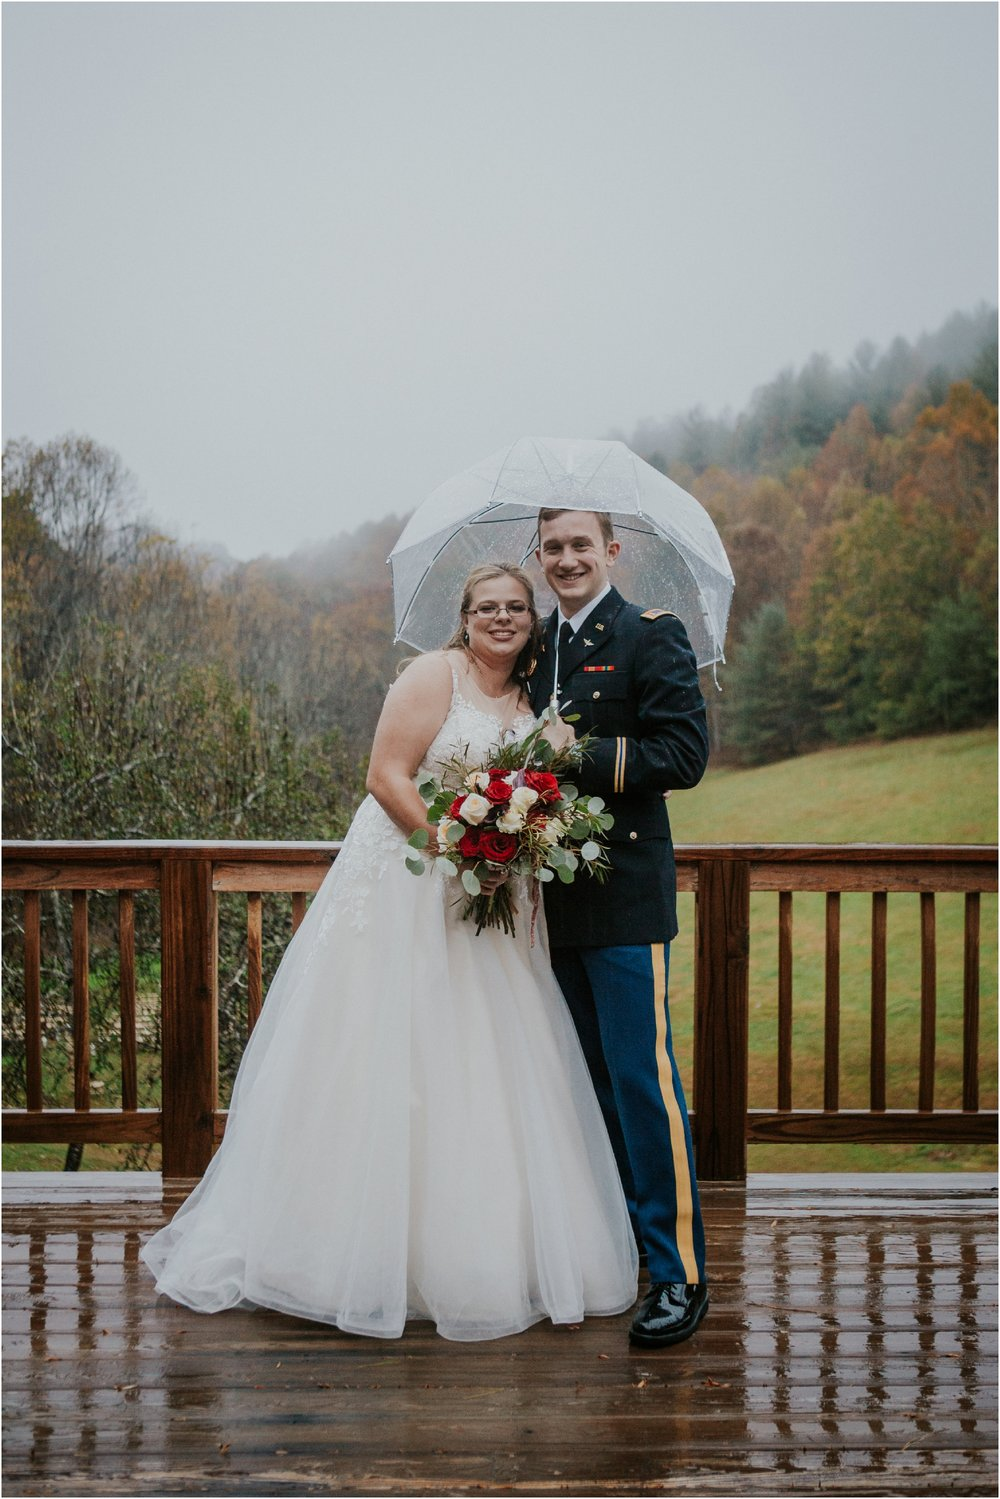 Sugar-Hollow-Retreat-Butler-Elizabethton-Tennessee-Rustic-Rainy-Wedding-Adventurous-Couple_0095.jpg